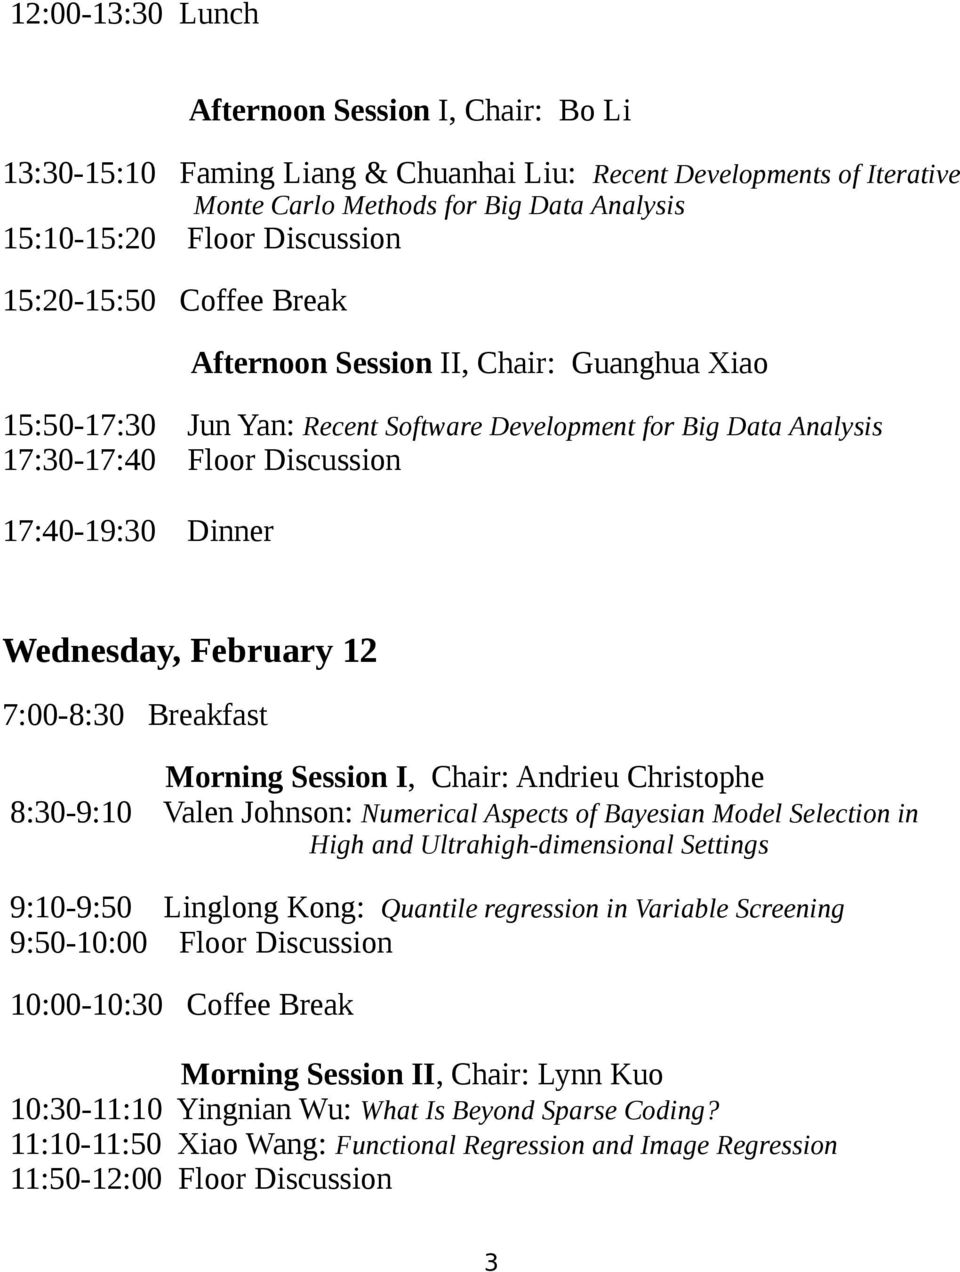 February 12 7:00-8:30 Breakfast Morning Session I, Chair: Andrieu Christophe 8:30-9:10 Valen Johnson: Numerical Aspects of Bayesian Model Selection in High and Ultrahigh-dimensional Settings